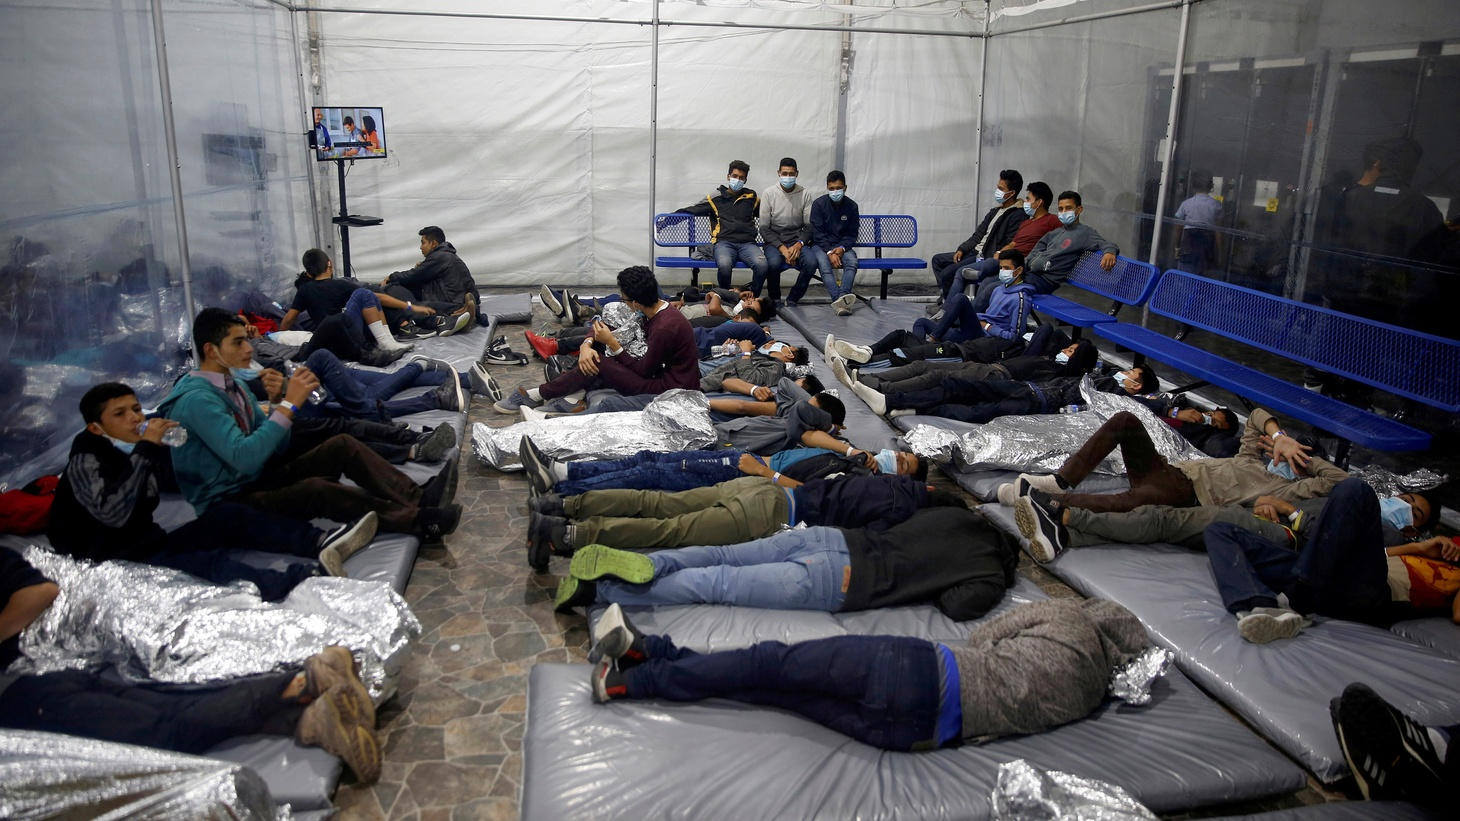 Young migrants lie inside a pod at the Donna Department of Homeland Security holding facility. It's the main detention center for unaccompanied children in the Rio Grande Valley, run by U.S. Customs and Border Protection, in Donna, Texas, Tuesday, March 30, 2021.